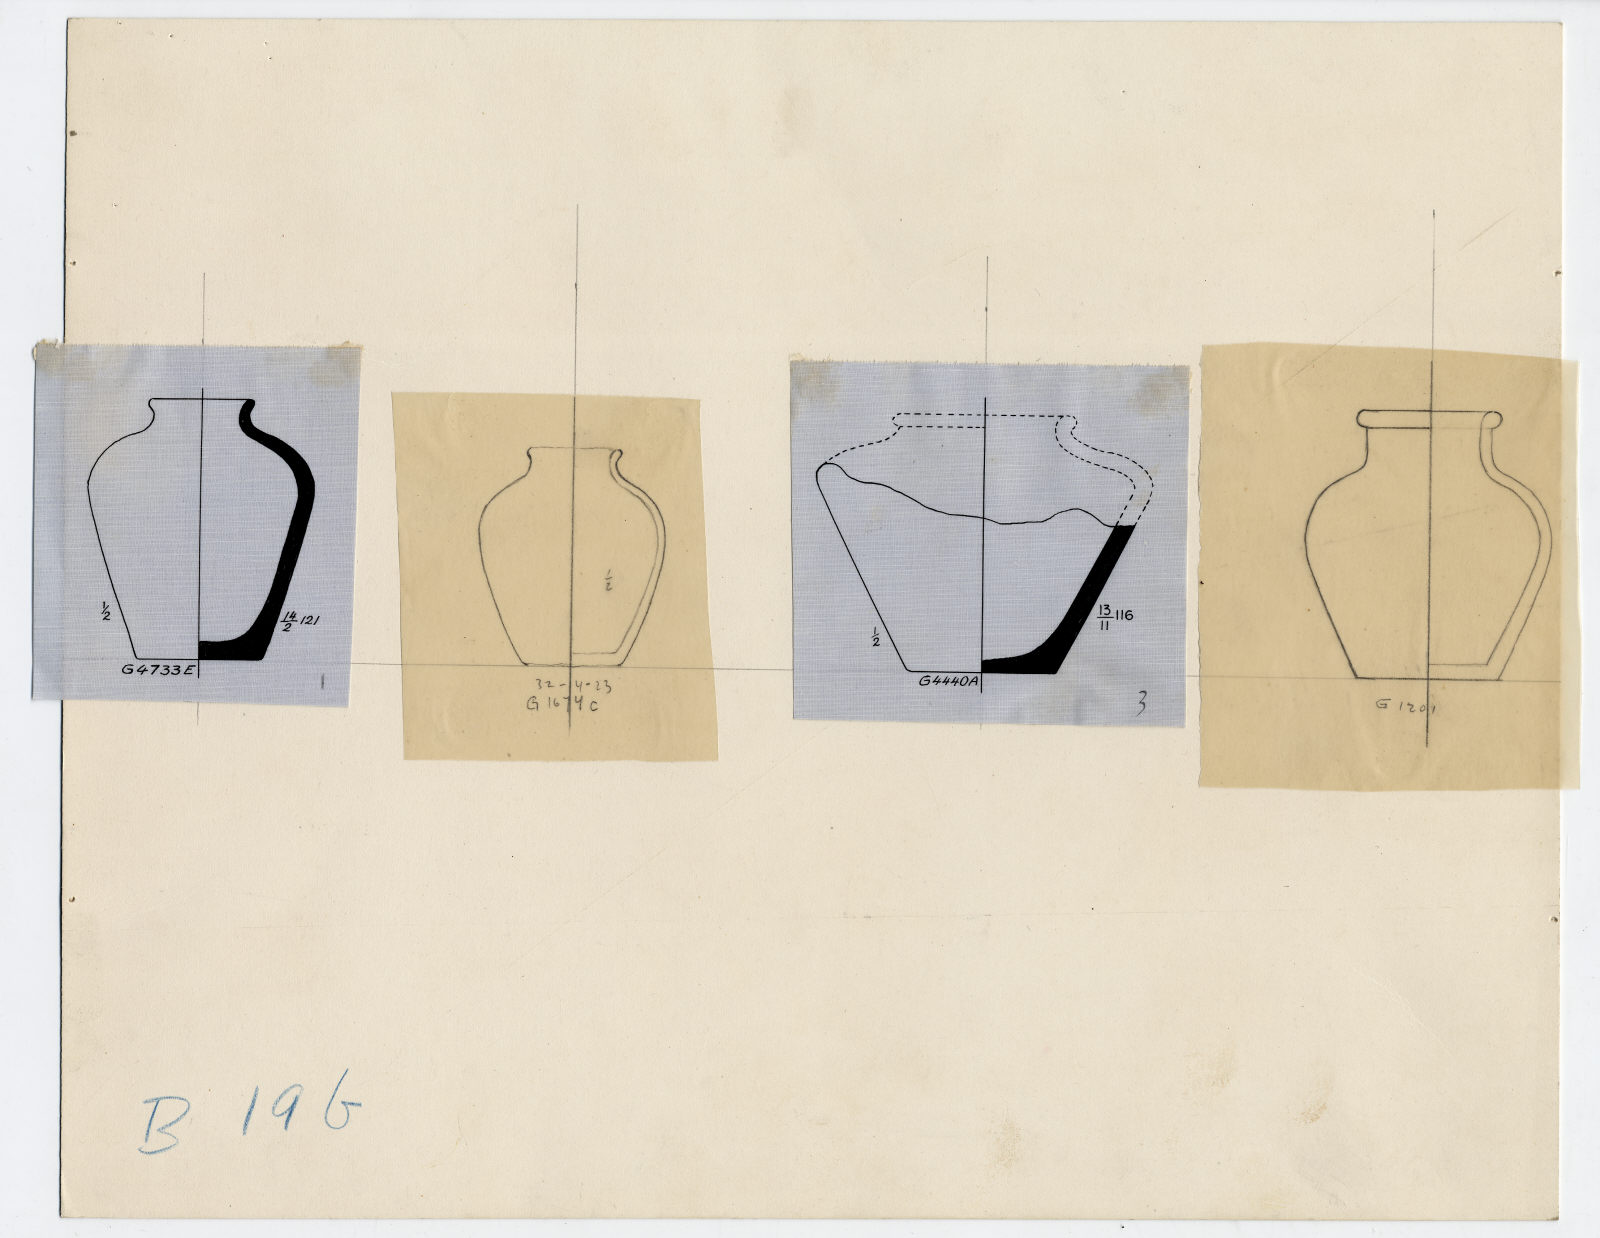 Drawings: pottery jars from G 4733, G 1647, G 1201